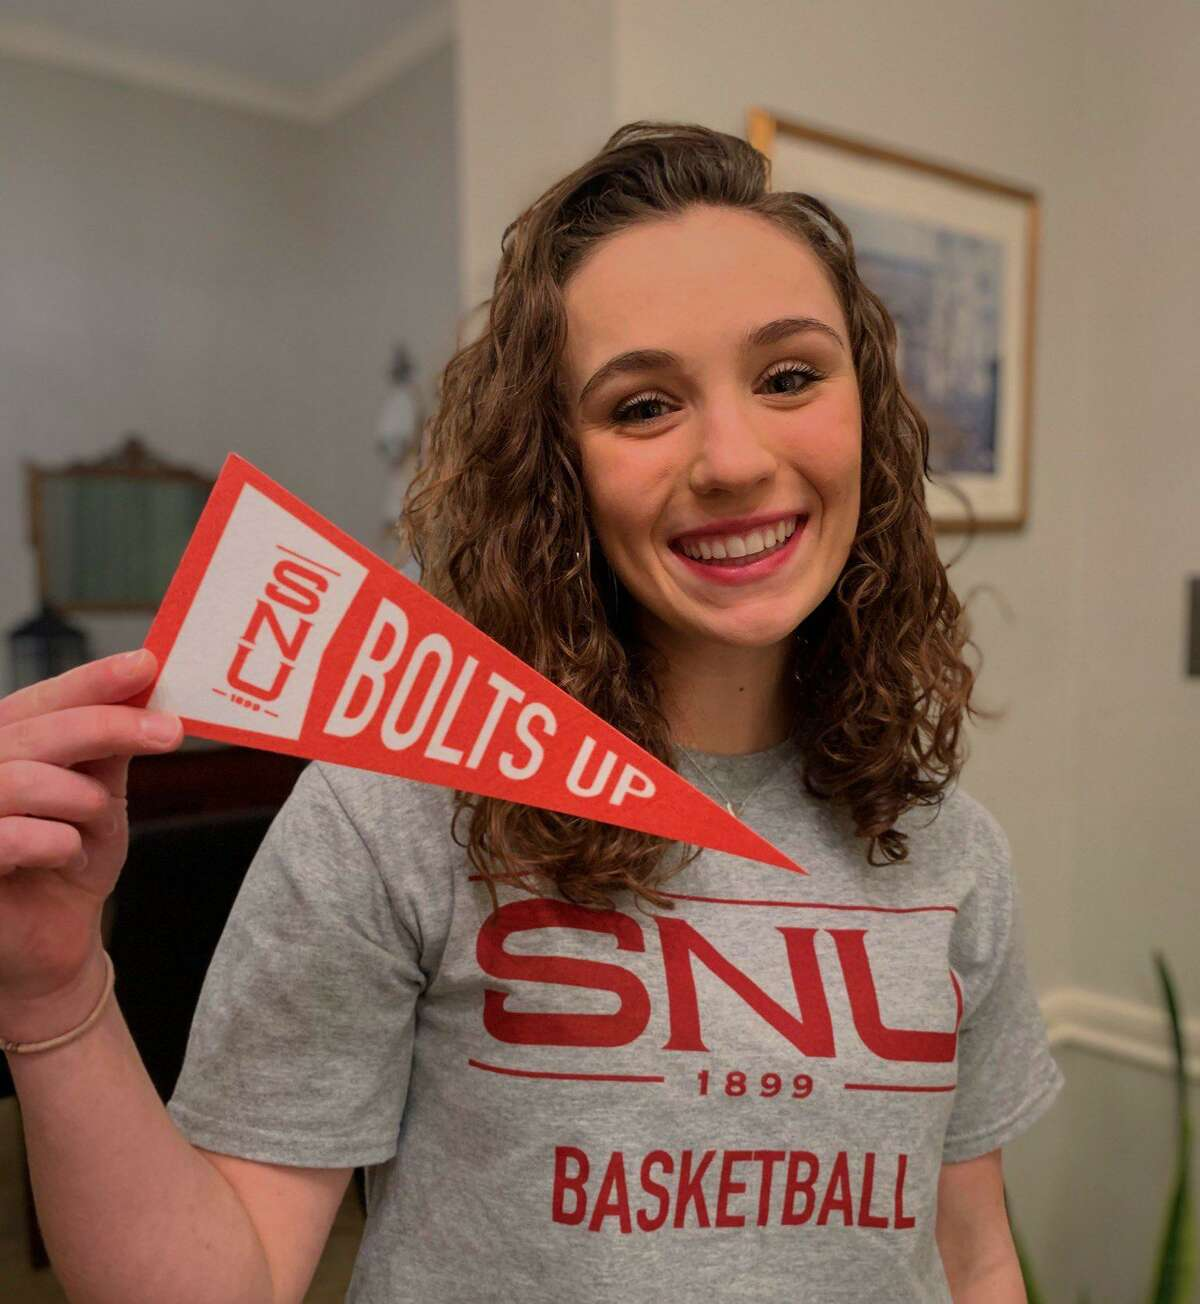 Tomball senior guard Eliza Lehmann played her last home game on Friday, Feb. 5, by scoring 18 points and in a win against Klein and officialy became a member of the 1000-point club. She recently committed to Southern Nazarene University.